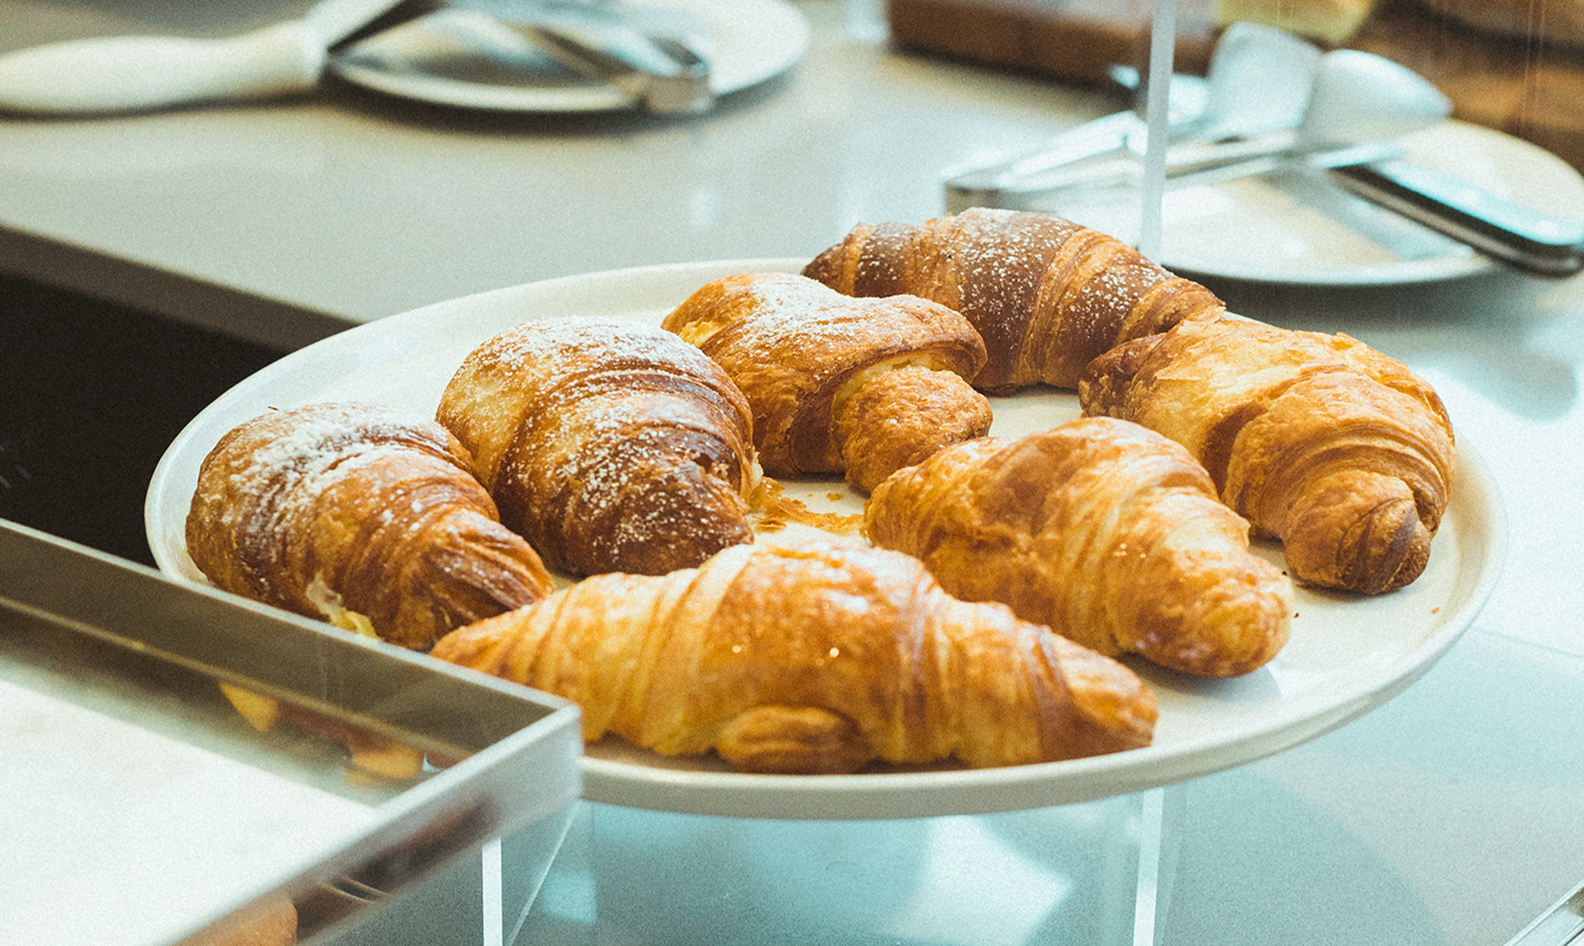 A plate of croissants